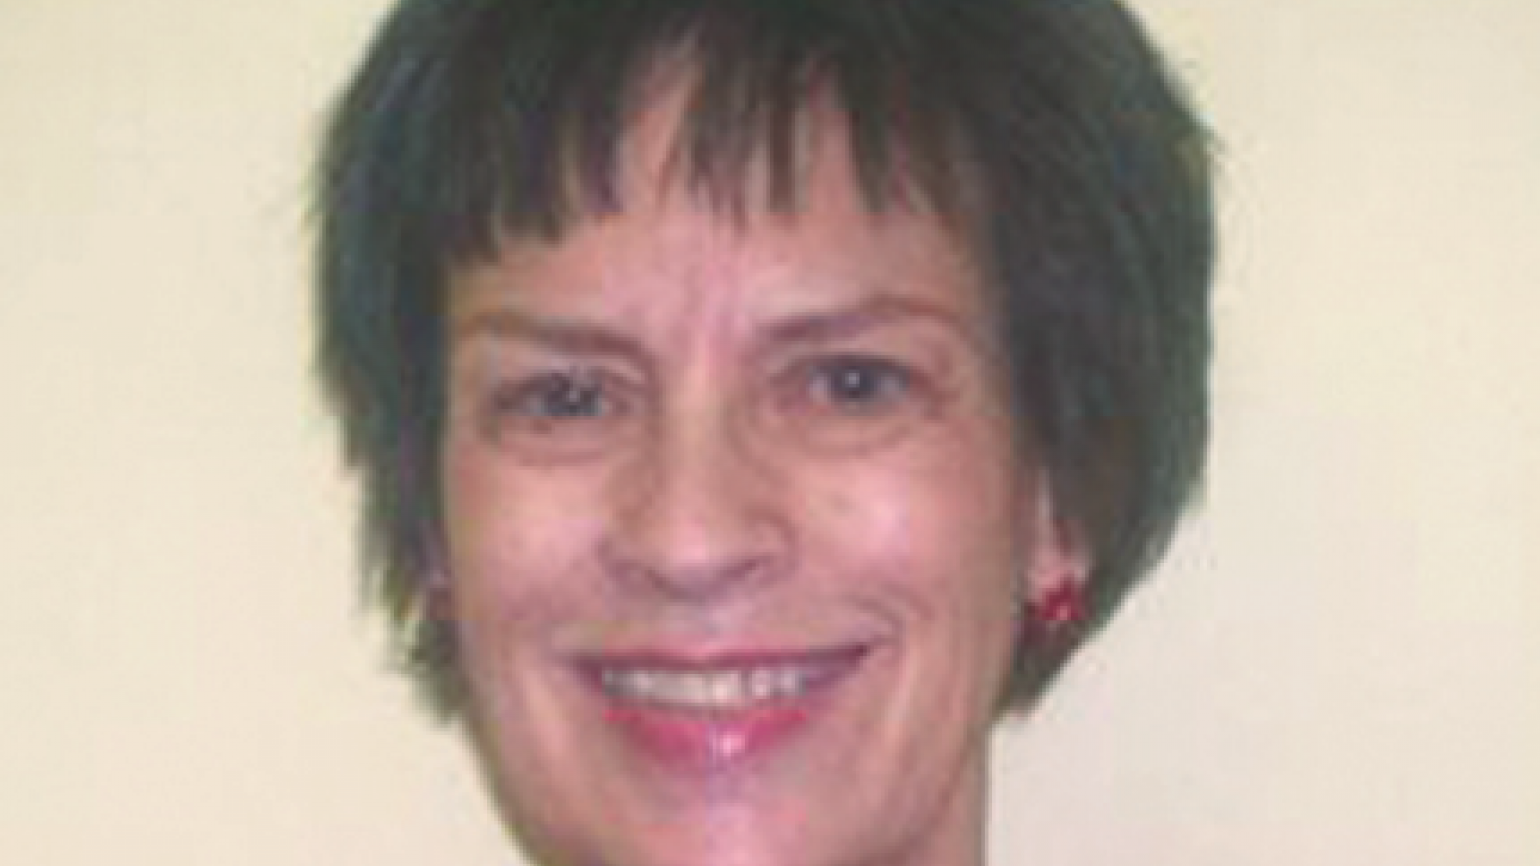 Daily Guideposts writer, Penney Schwab